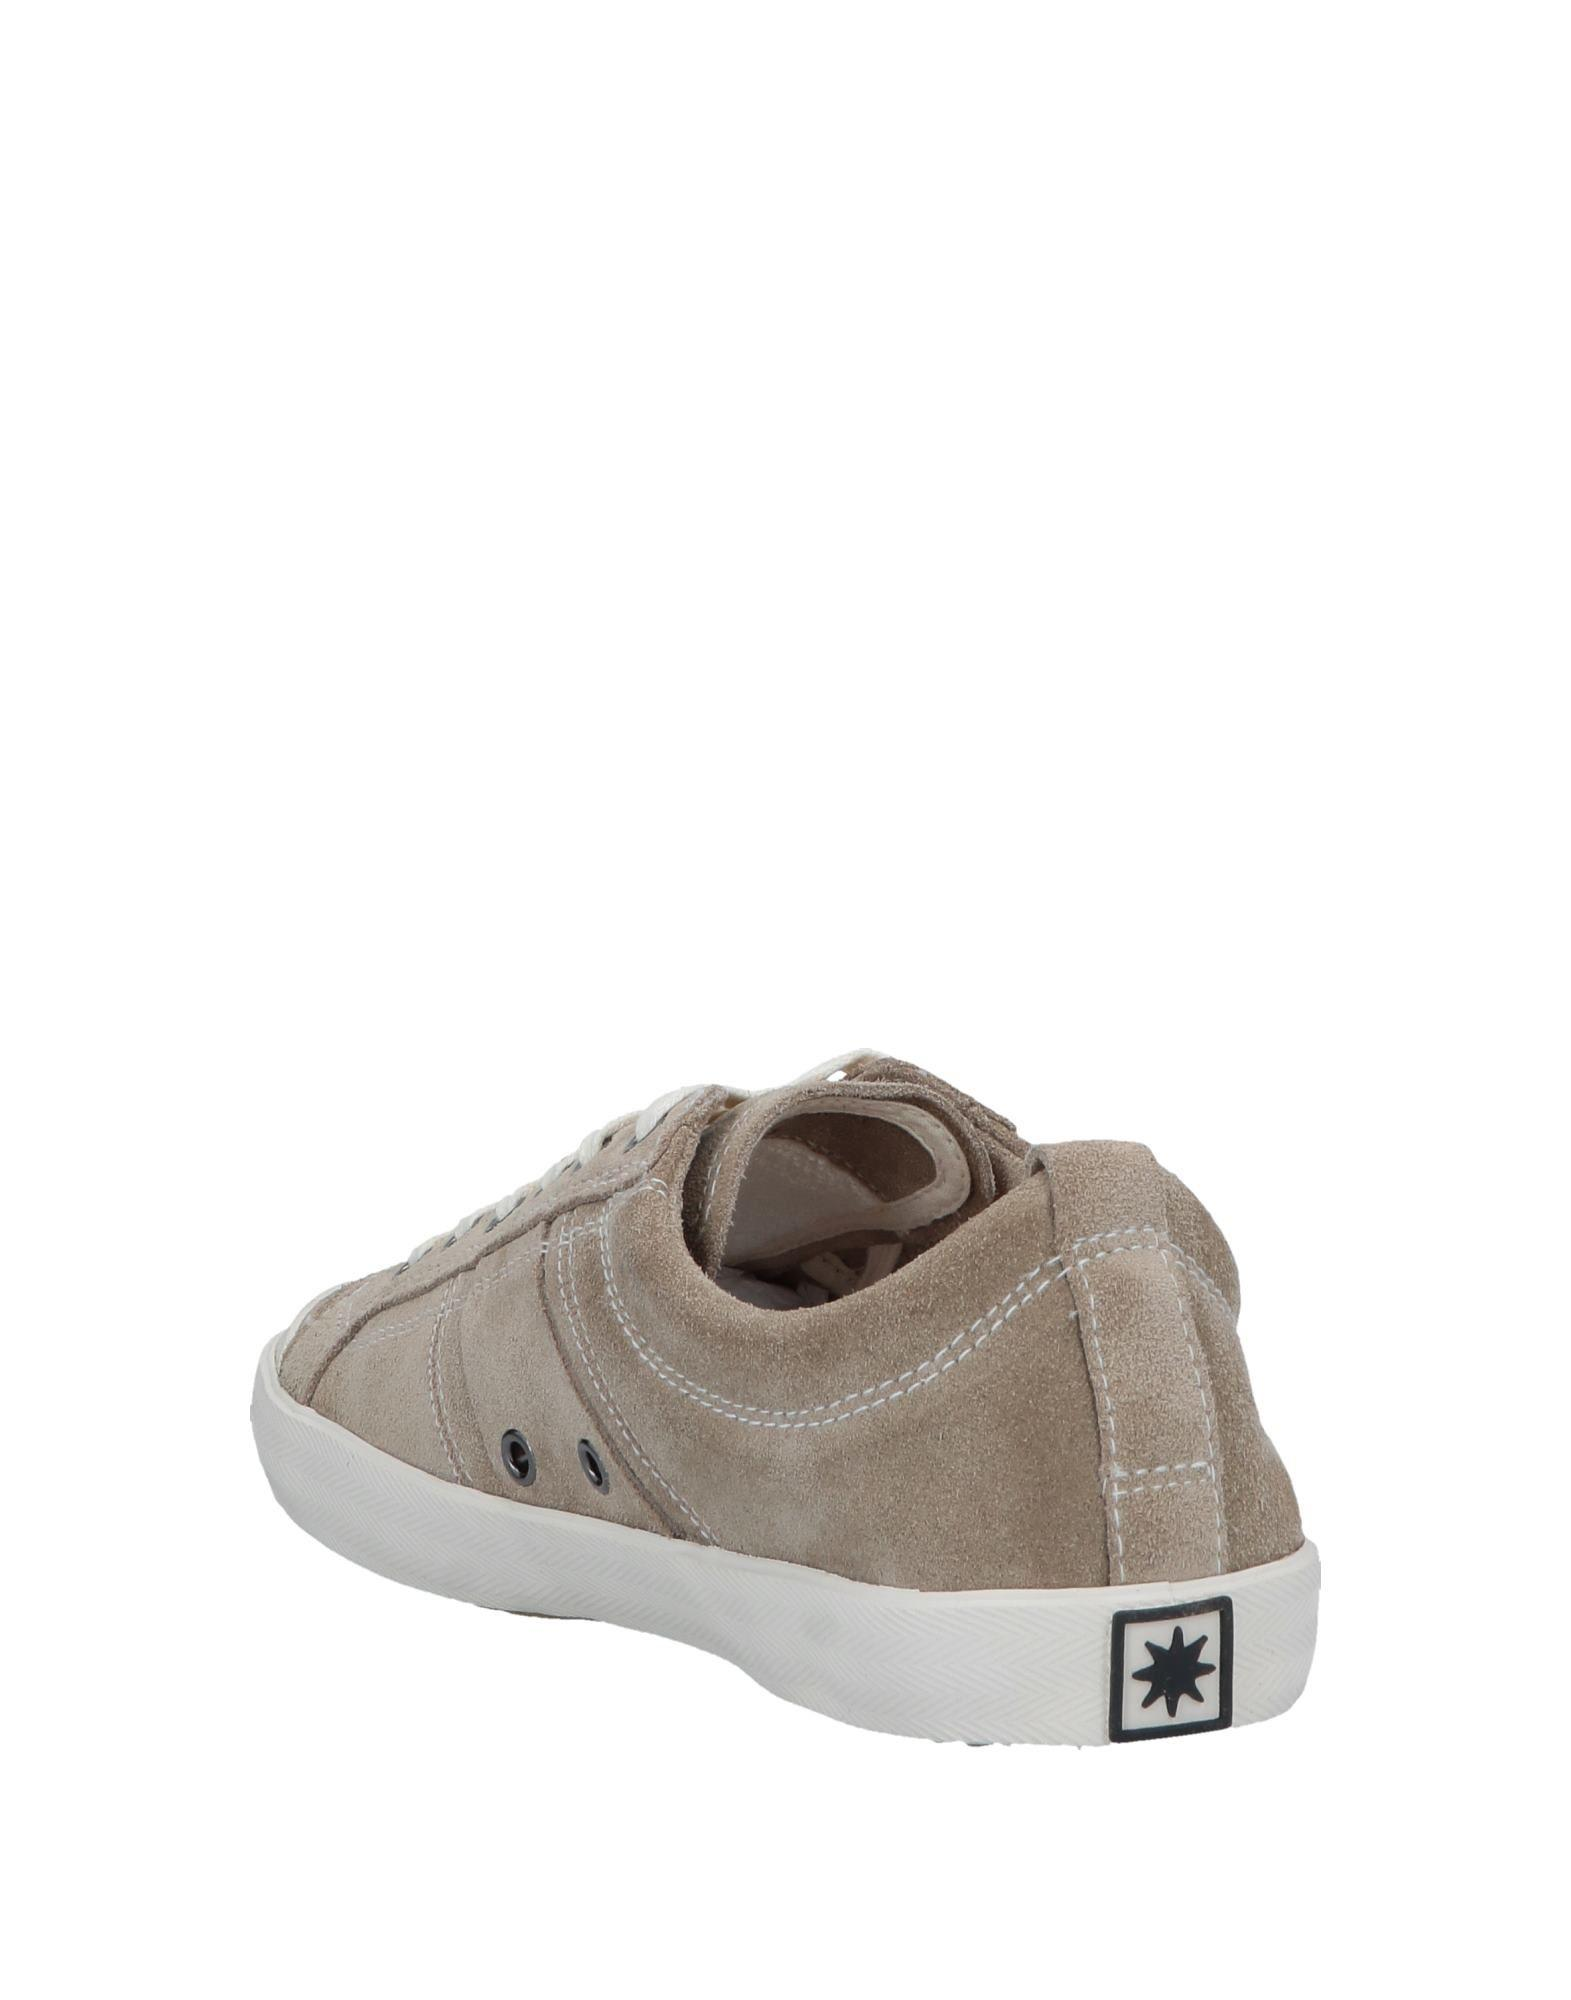 Sneakers d amp; Lyst By In Natural Made c Tops Hand N Low zz5Bwq8